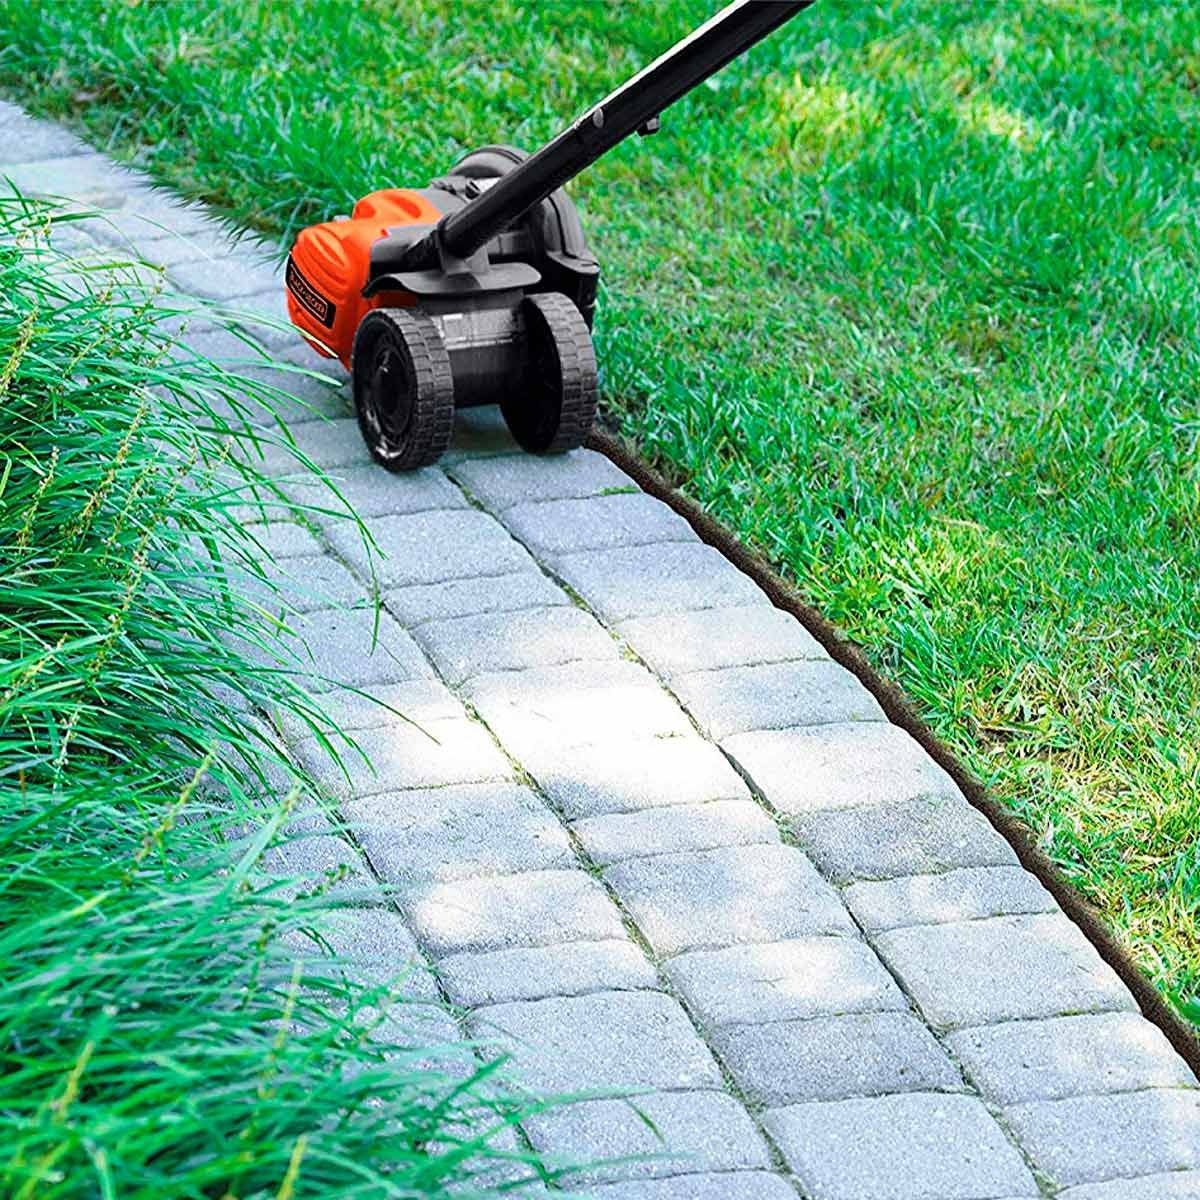 Best Lawn Edgers You Can Buy On Amazon Lawn Edger Best Lawn